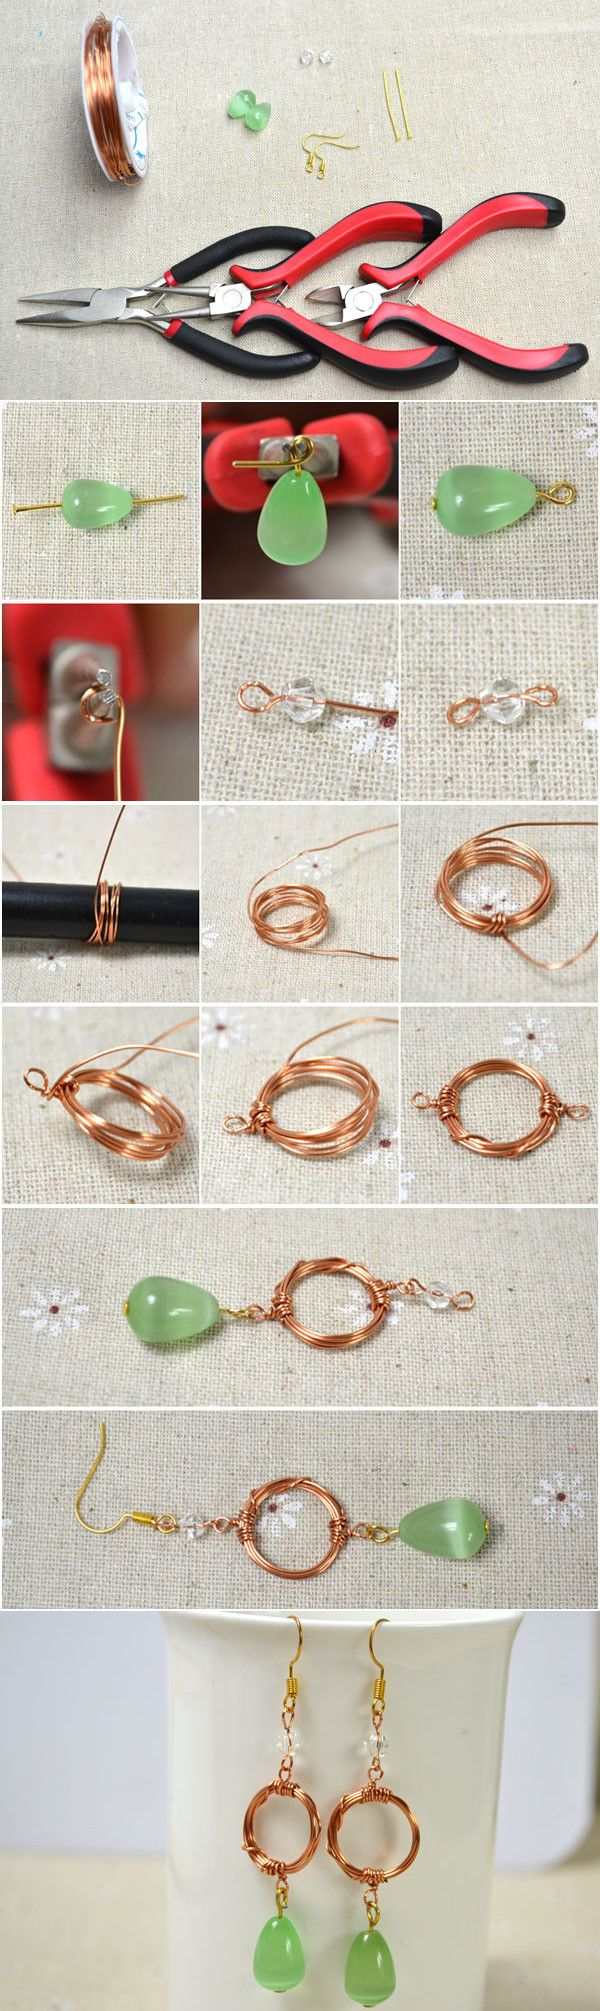 Tutorial on How to Make Simple Wire Wrapped Dangle Earrings from LC ...